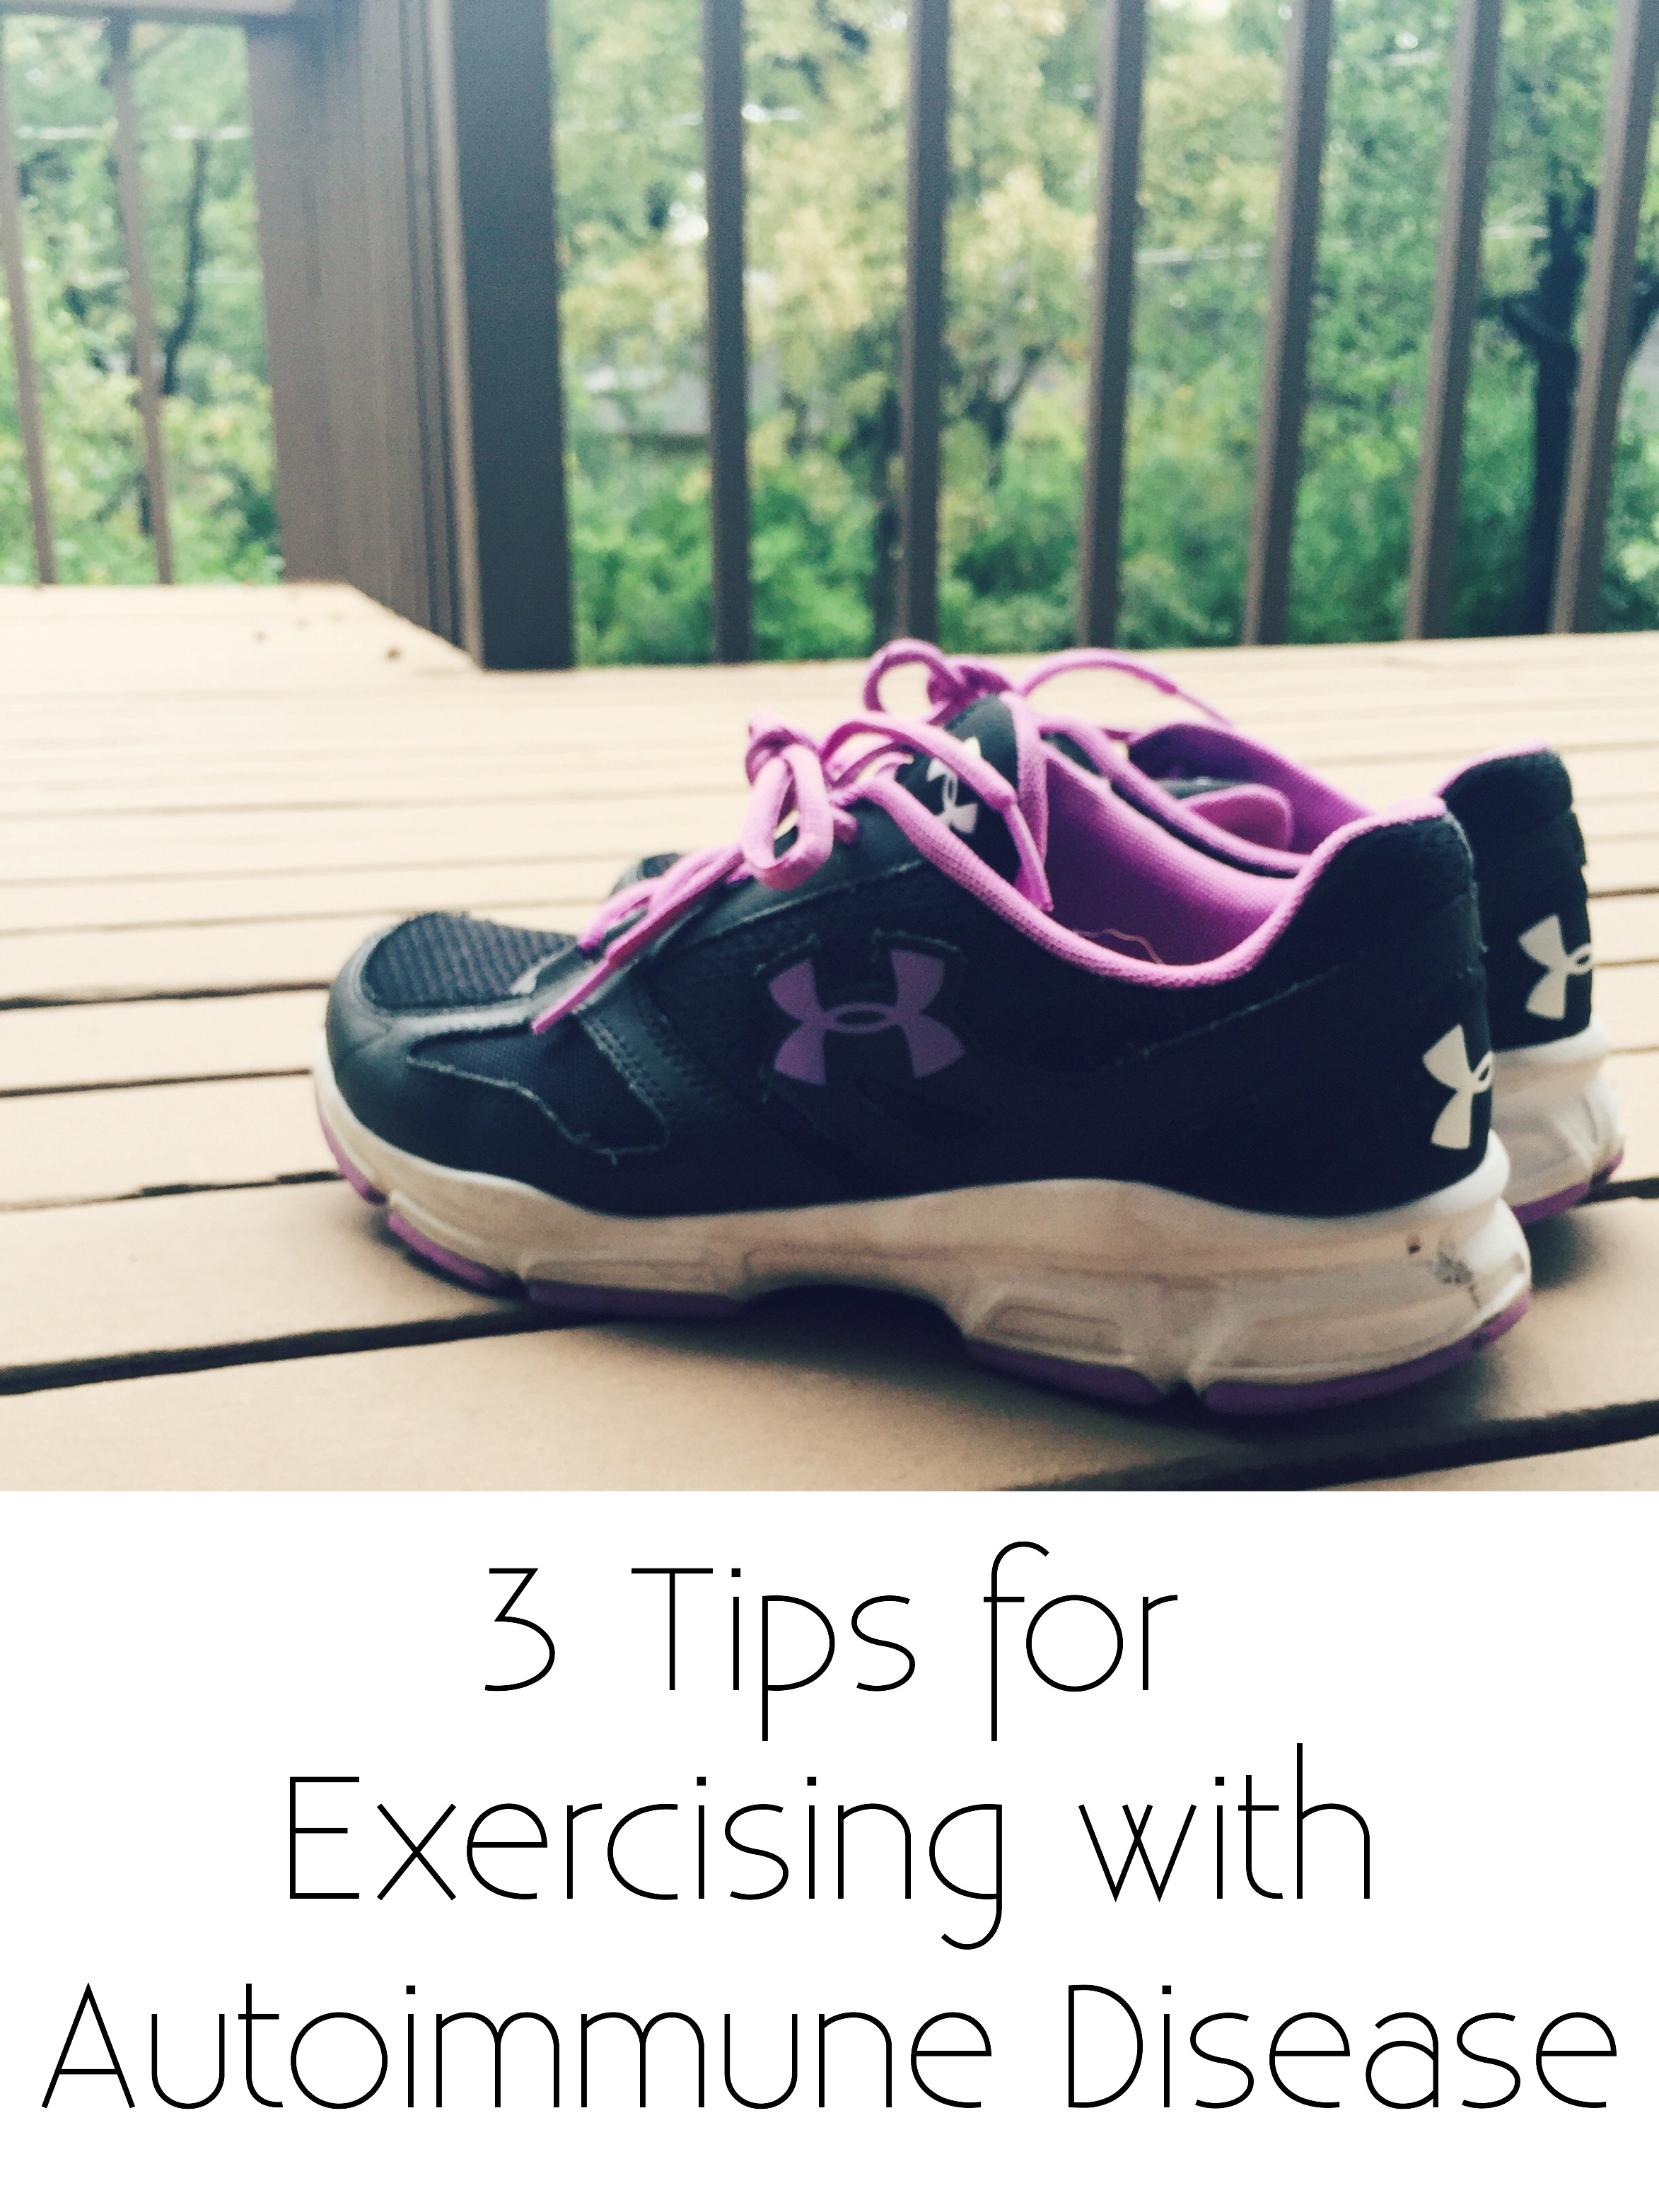 Exercising with Autoimmune Diseaes - 3 Tips